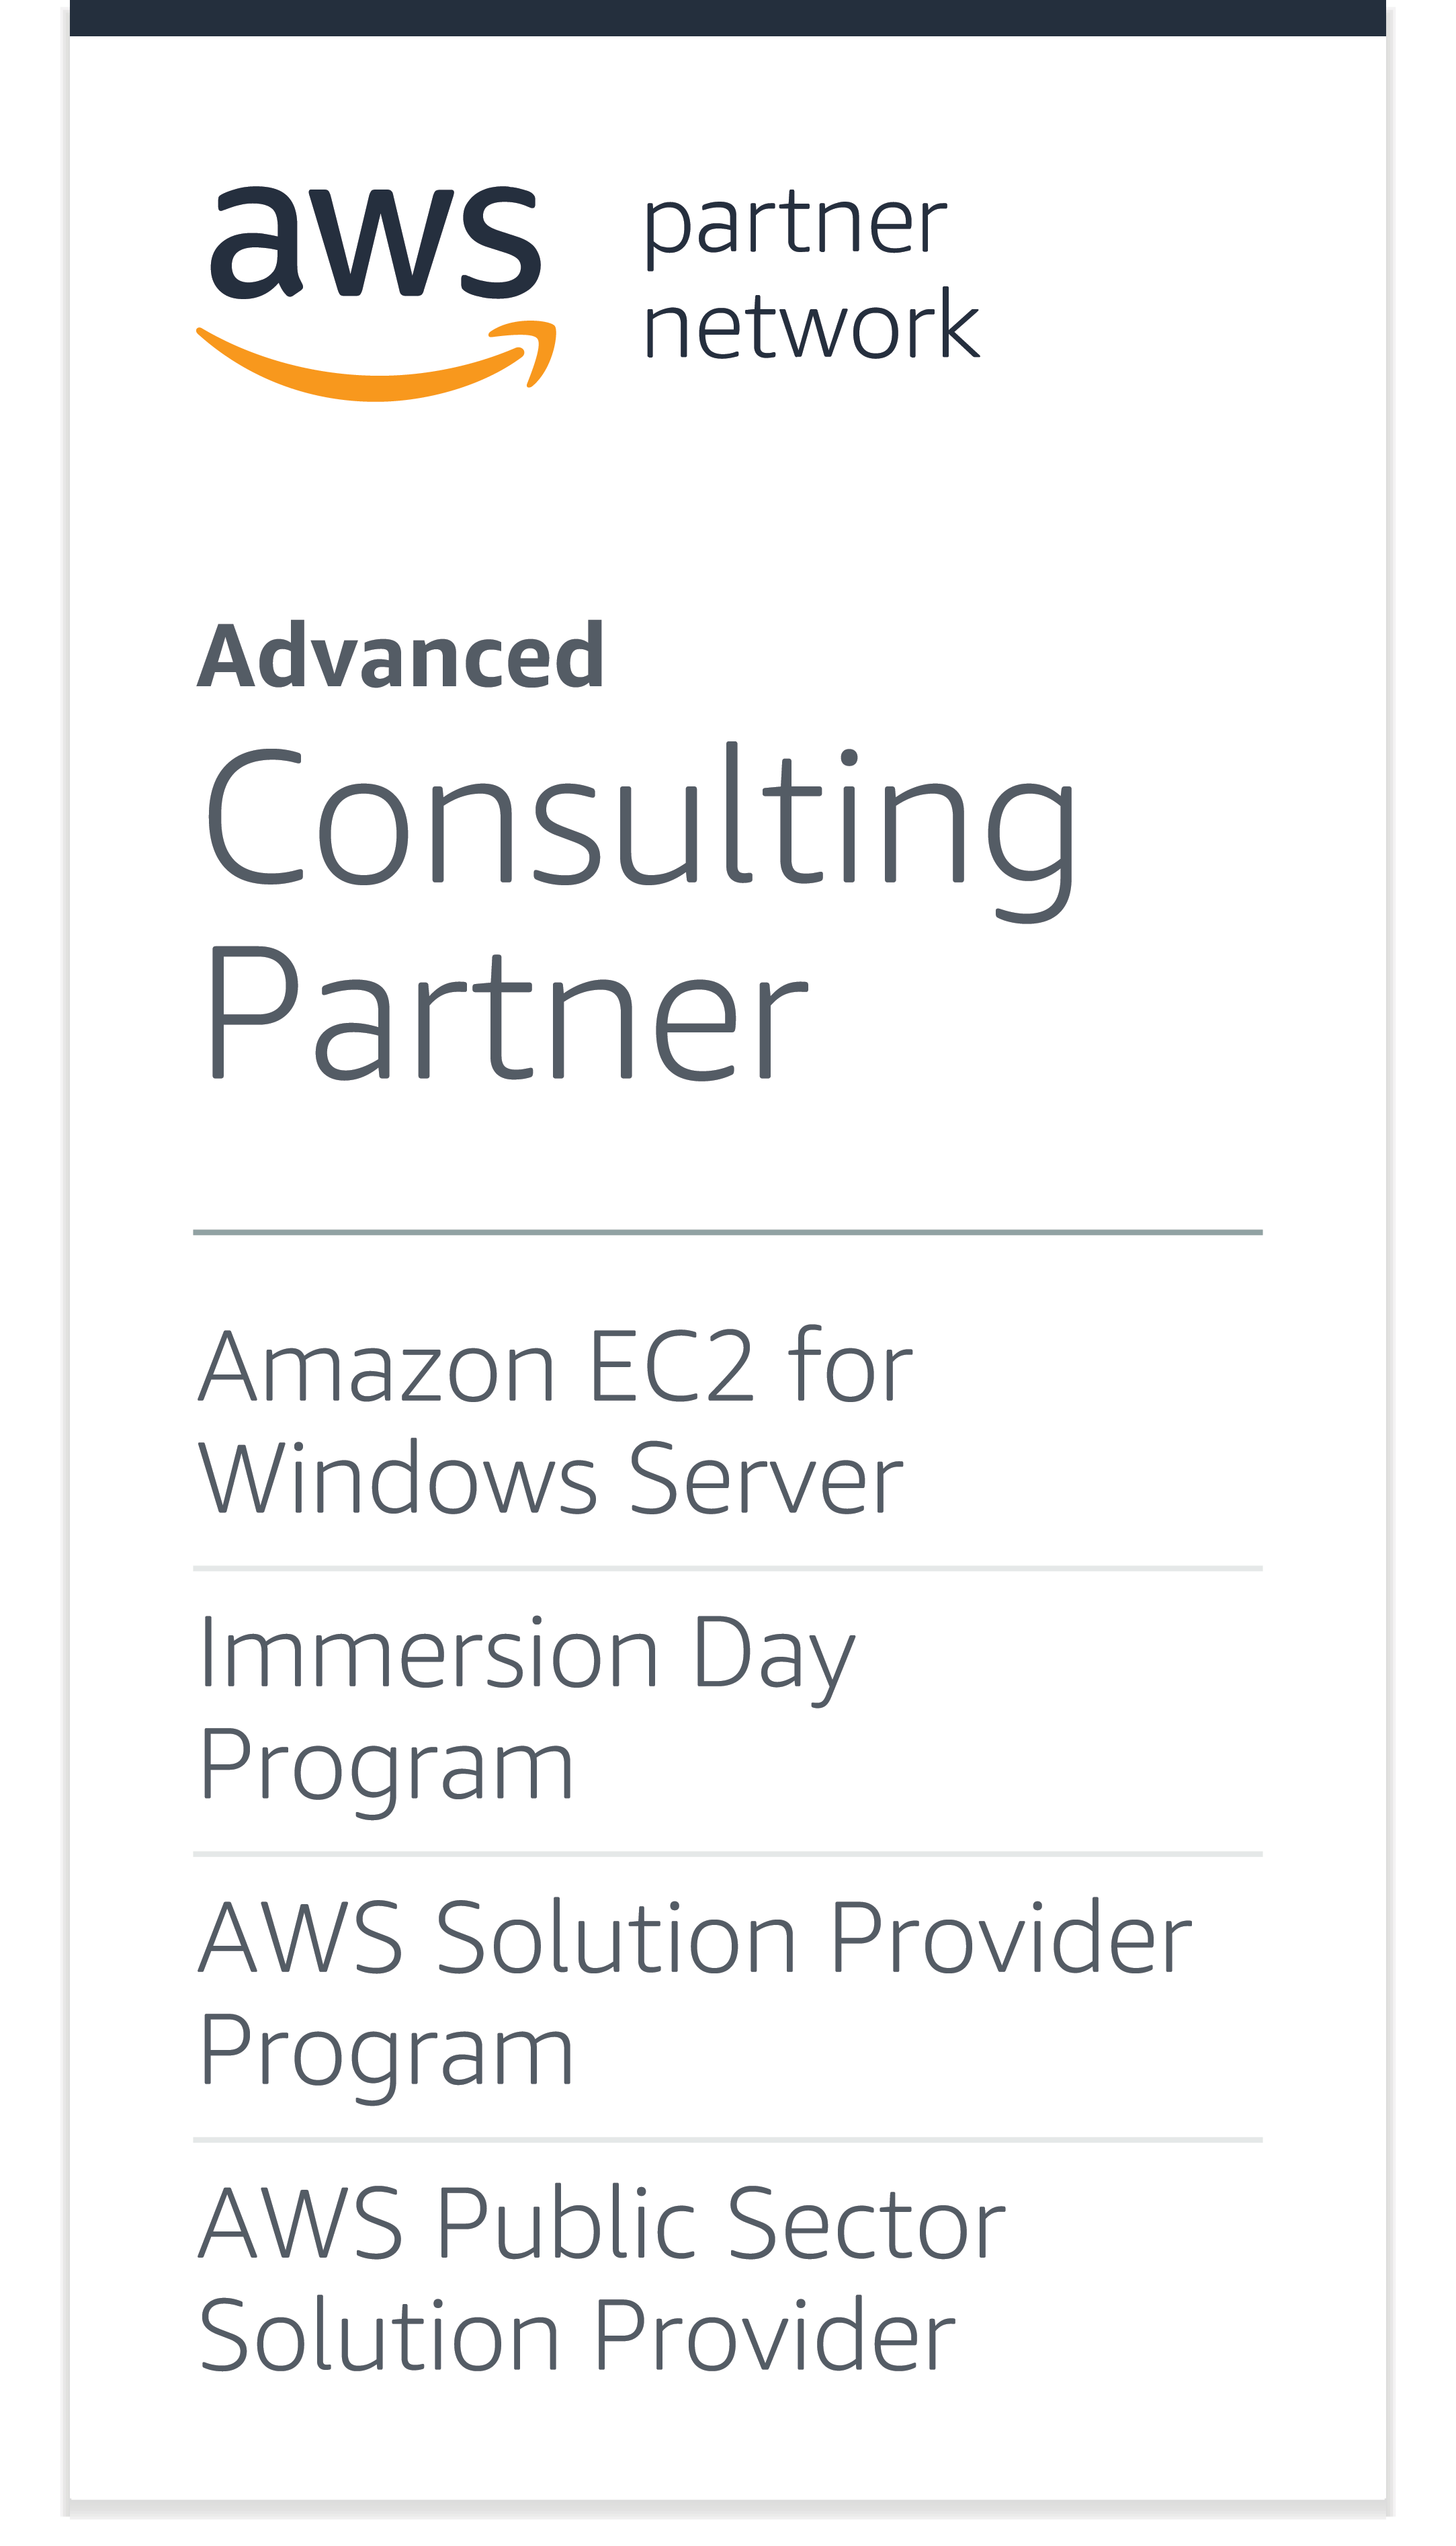 AWS Badge 5 20 2020